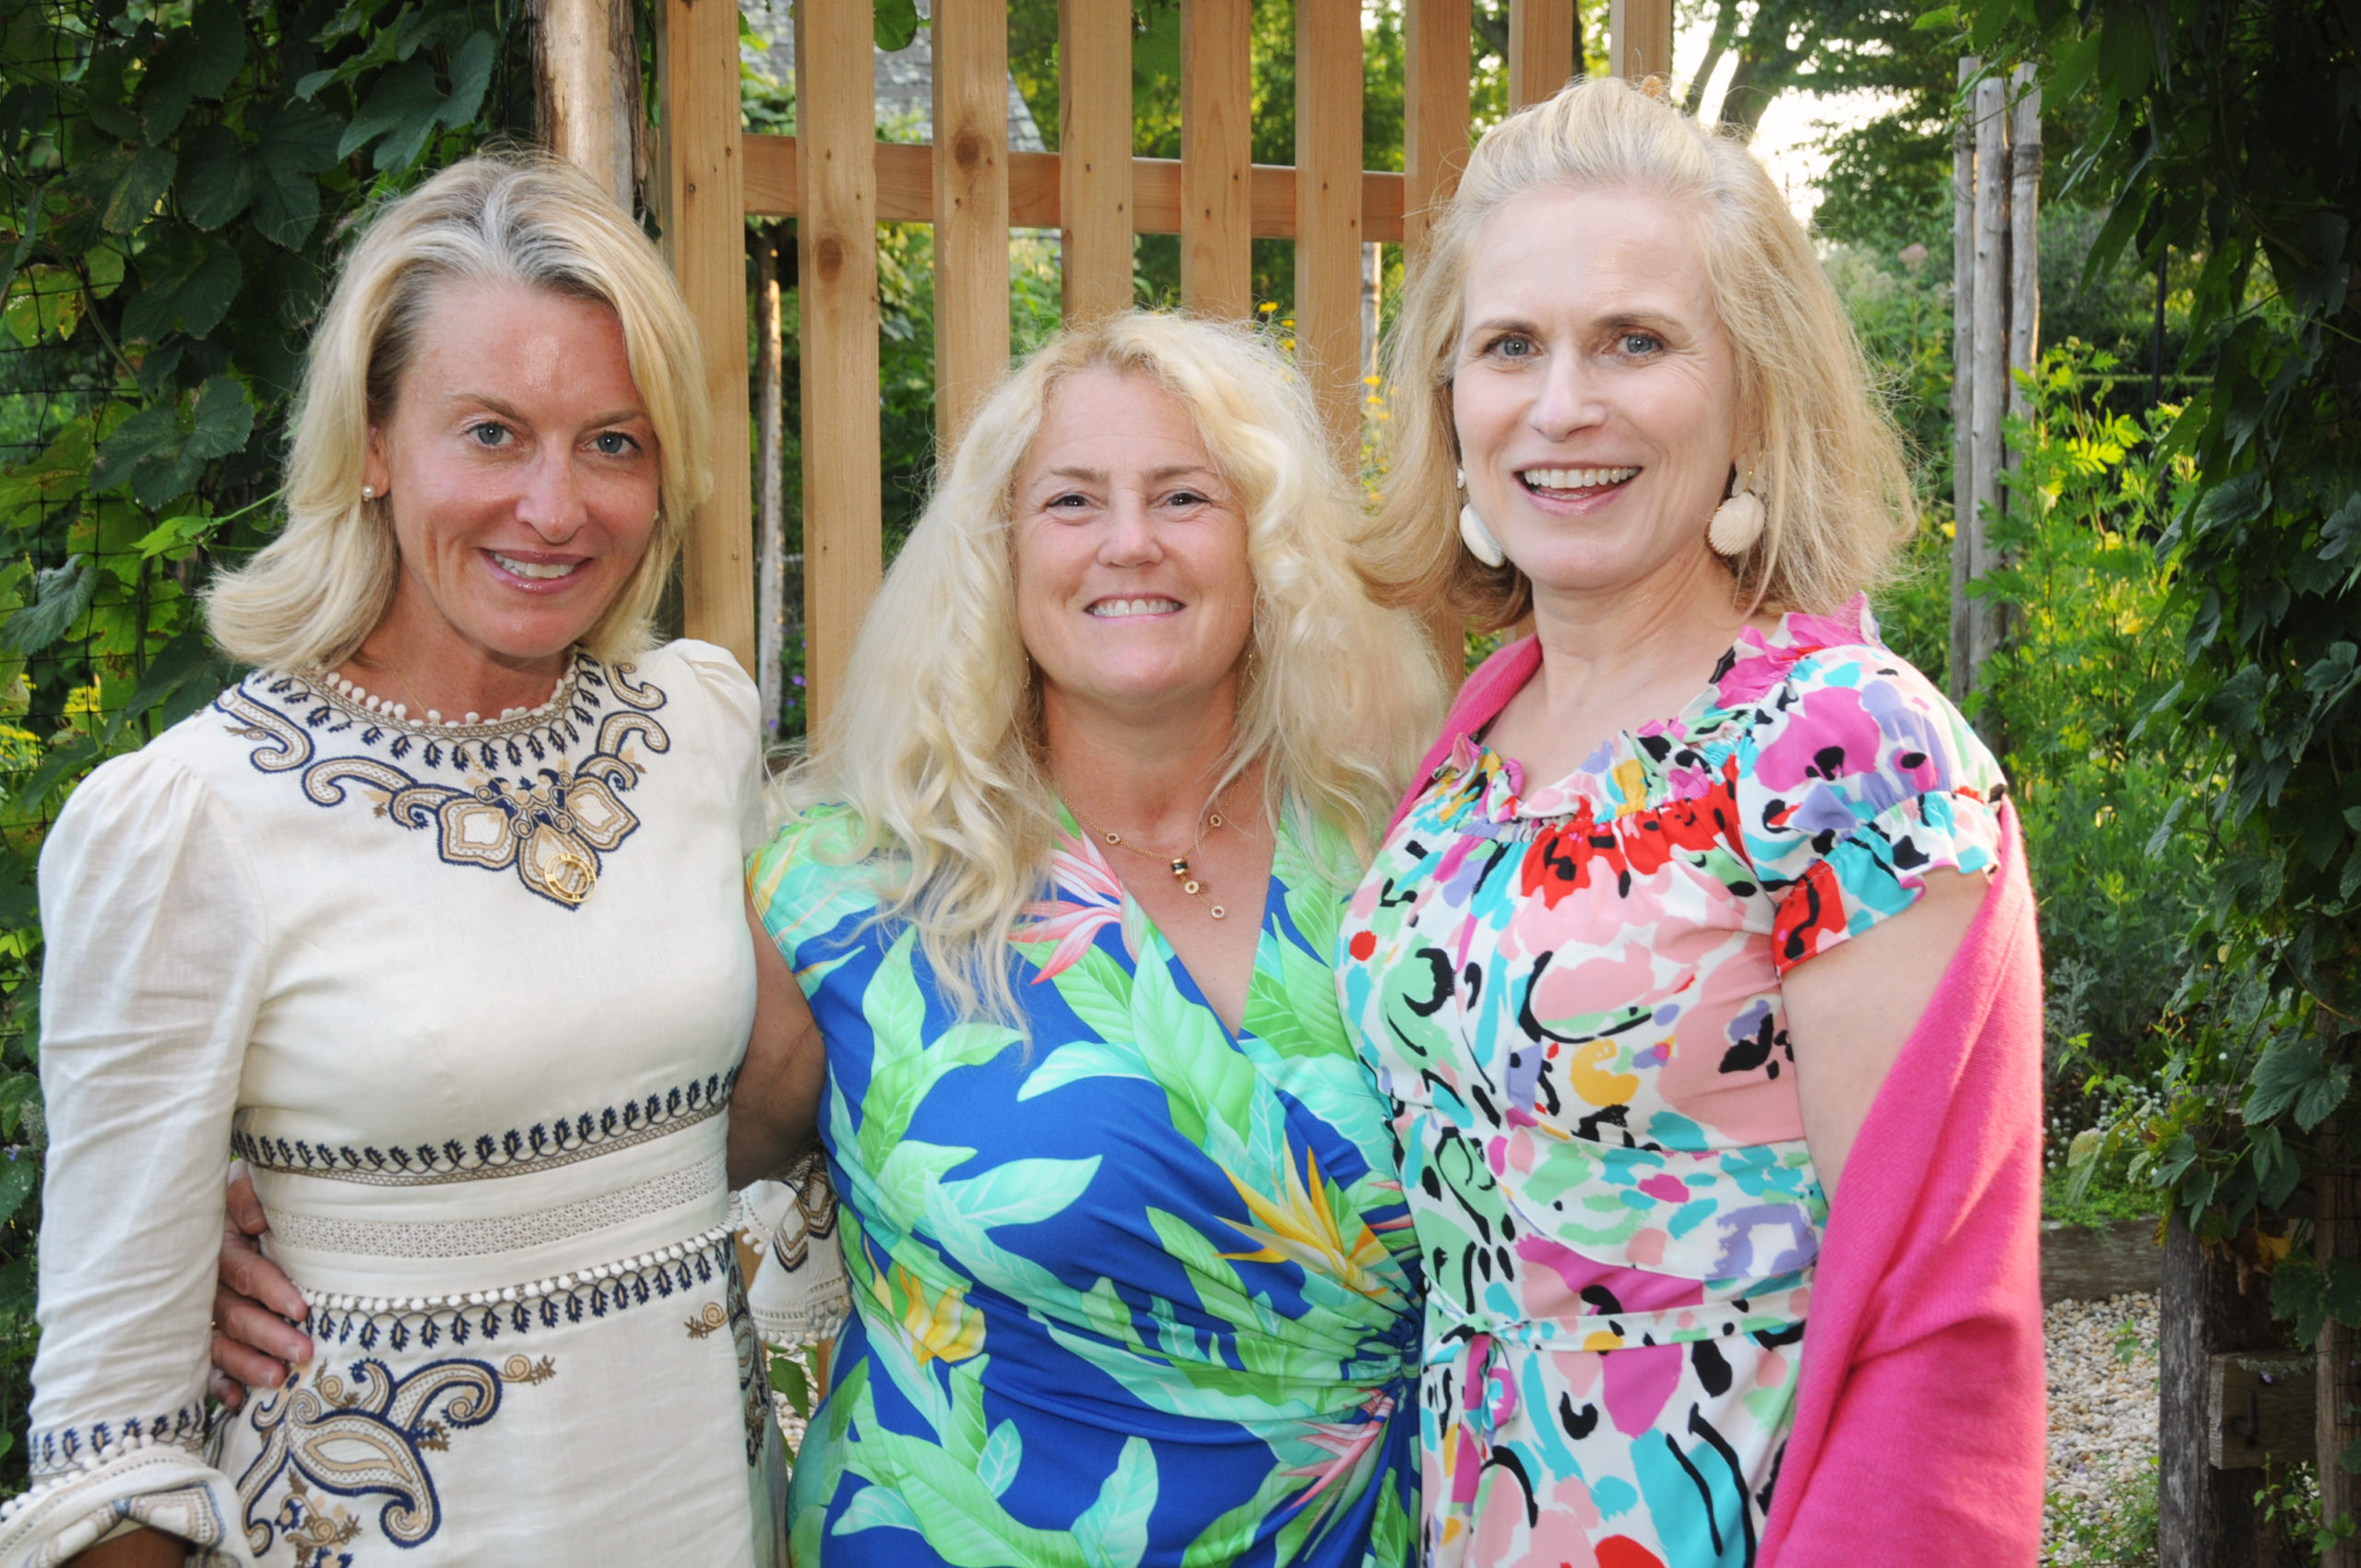 Tina Teel, Lynda Packard and Jennifer Borg at the East Hampton Historical Society's preview benefit cocktail party for the 2021 East Hampton Antiques & Design Show on Friday evening on the grounds of Mulford Farm. RICHARD LEWIN